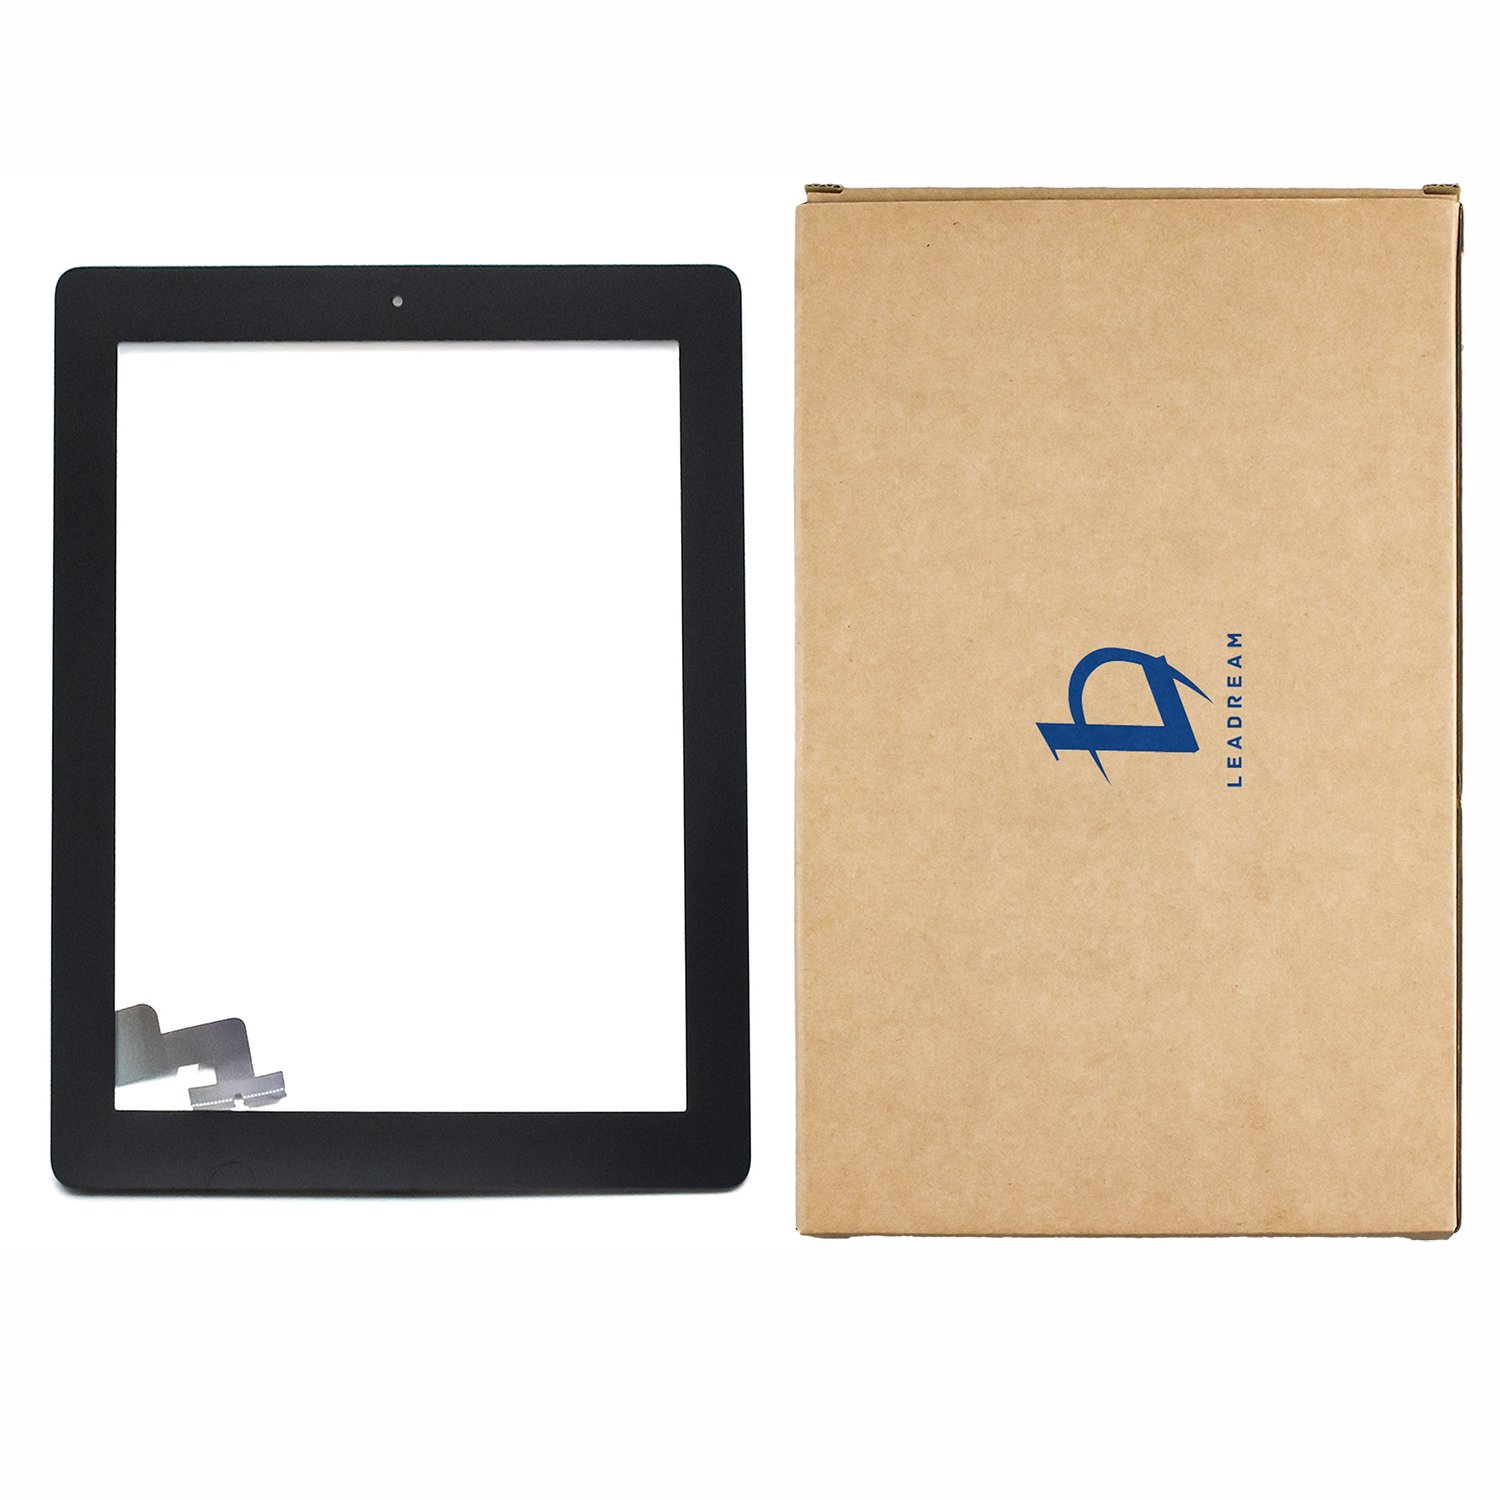 Black Touch Screen Digitizer Assembled with Home Butoon Strong Adhesive for iPad 2 2nd Generation A1395 A1396